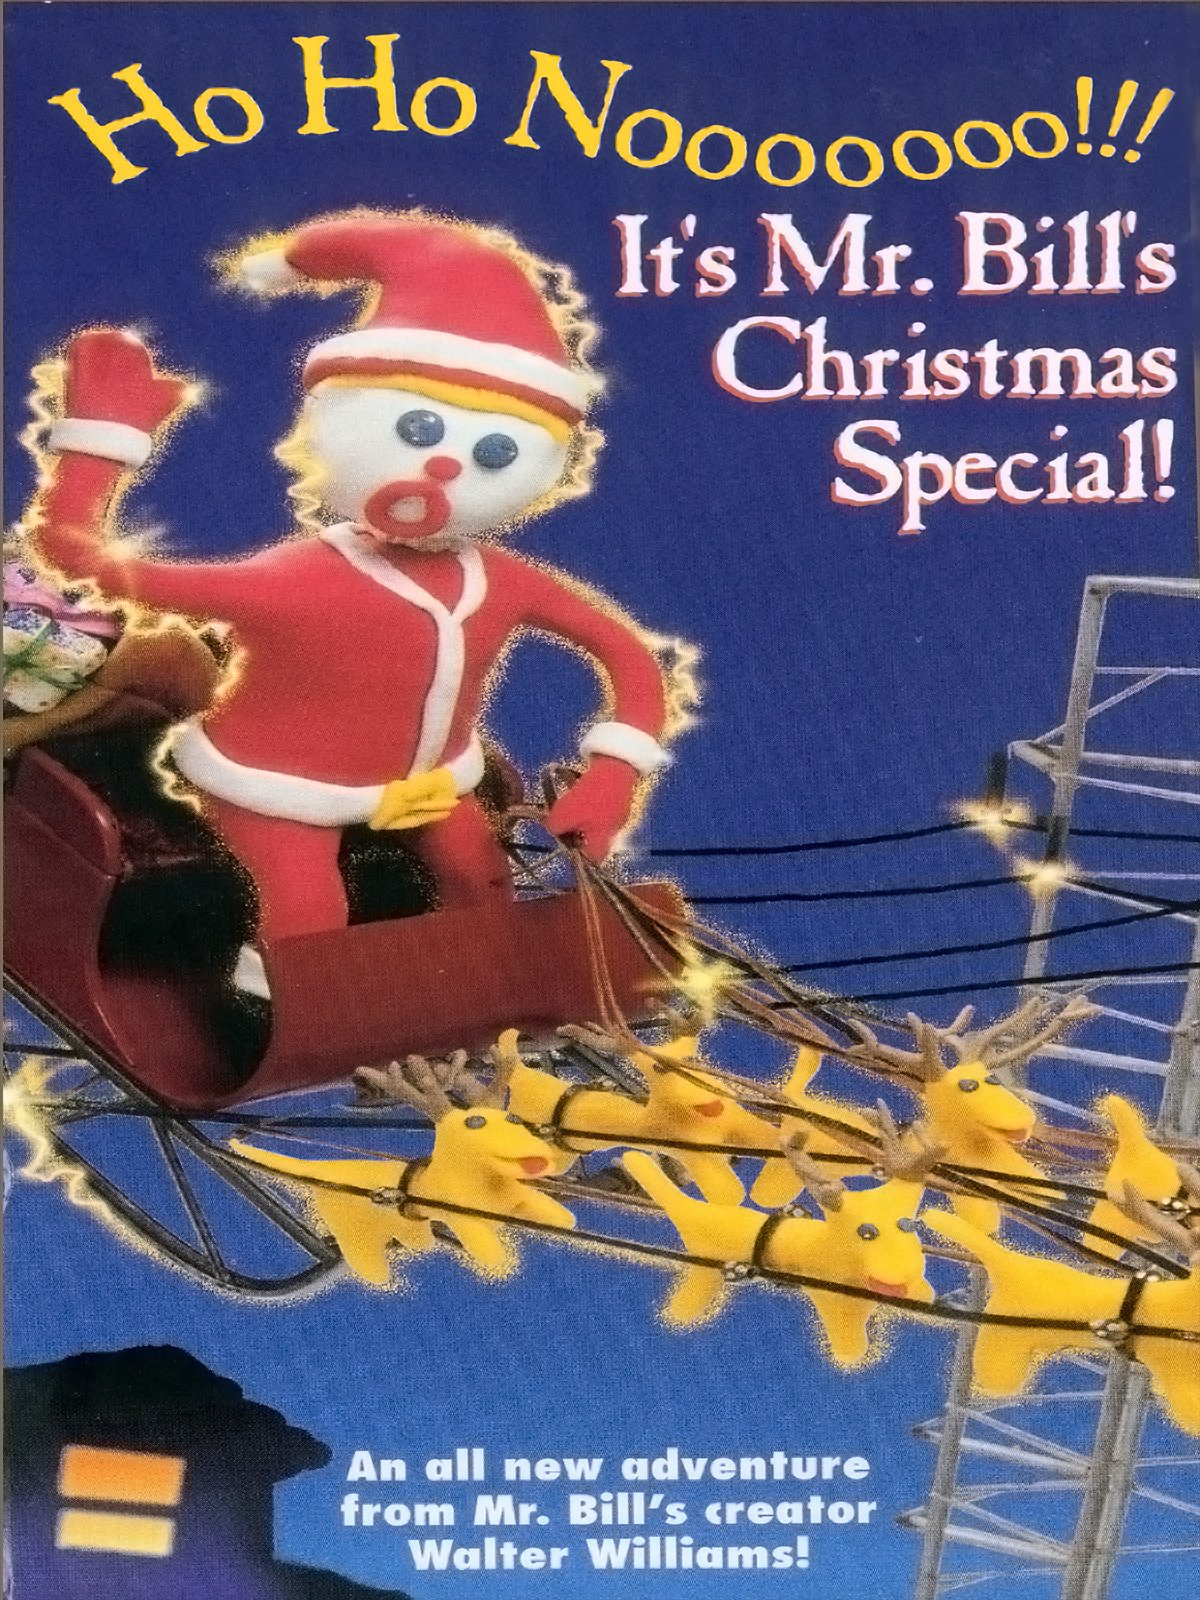 Mr. Bill's Christmas Special